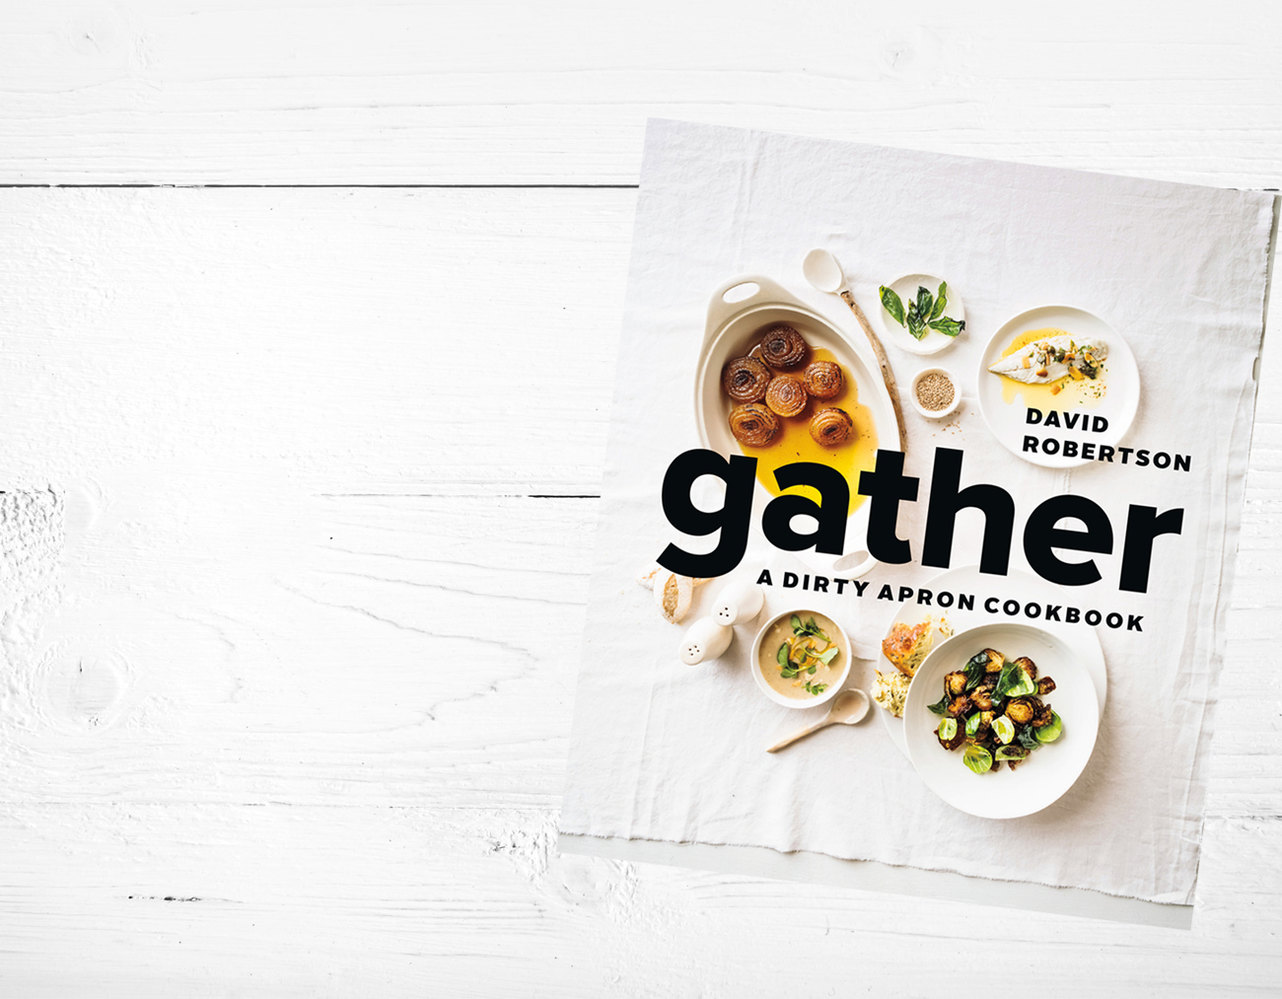 NEW: GATHER - THE DIRTY APRON'S 2ND COOKBOOK